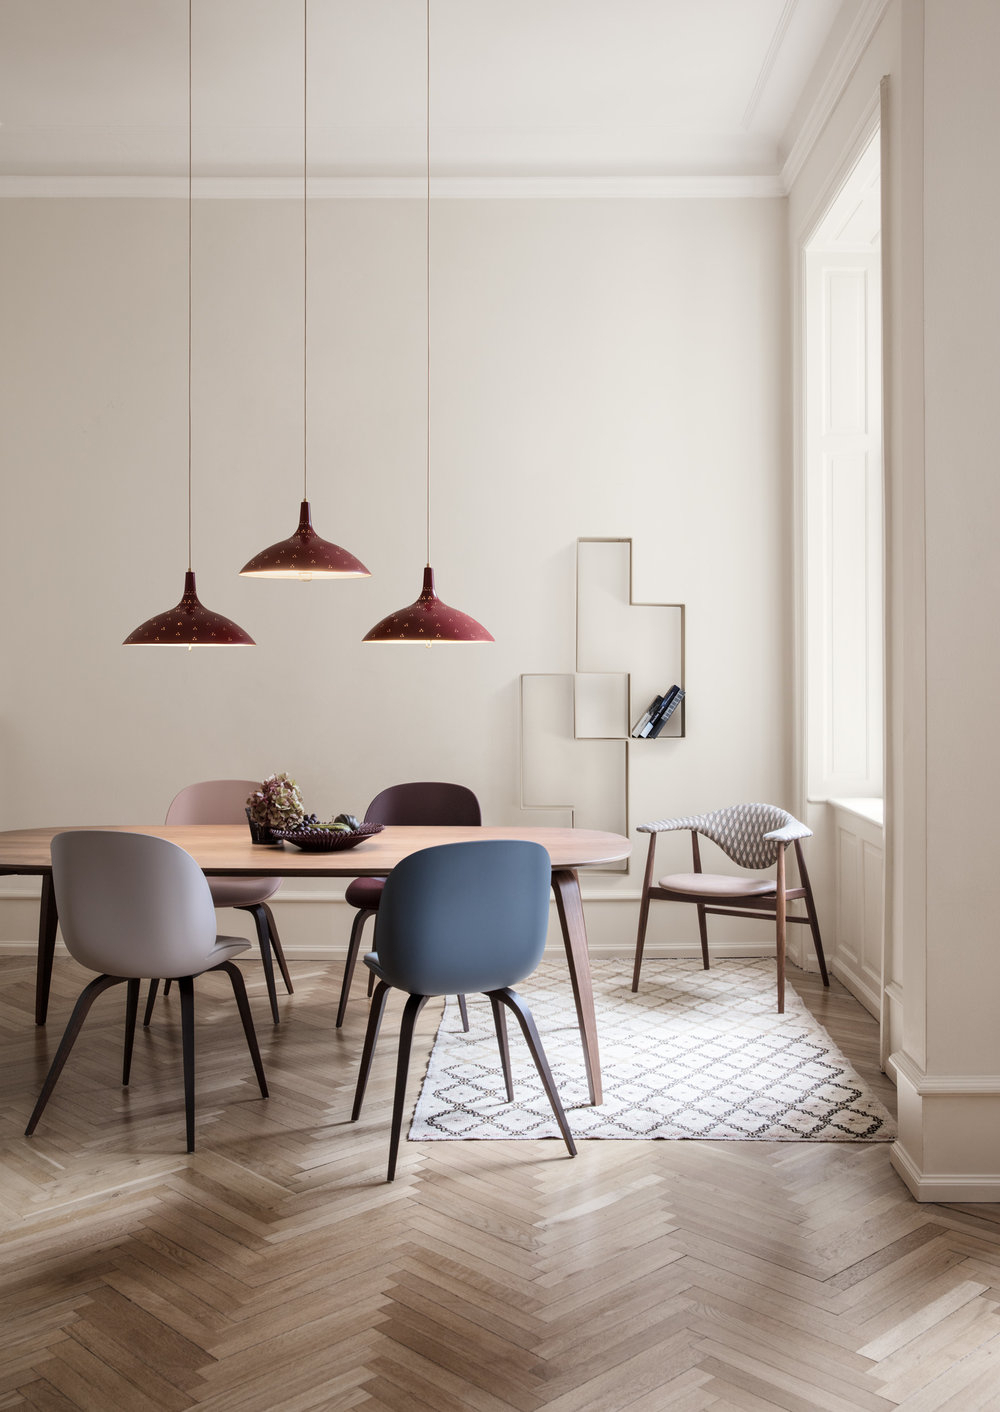 Gubi Dining Table Collection Overview — Gubi Inside 2018 Dining Tables With Stained Ash Walnut (View 21 of 30)